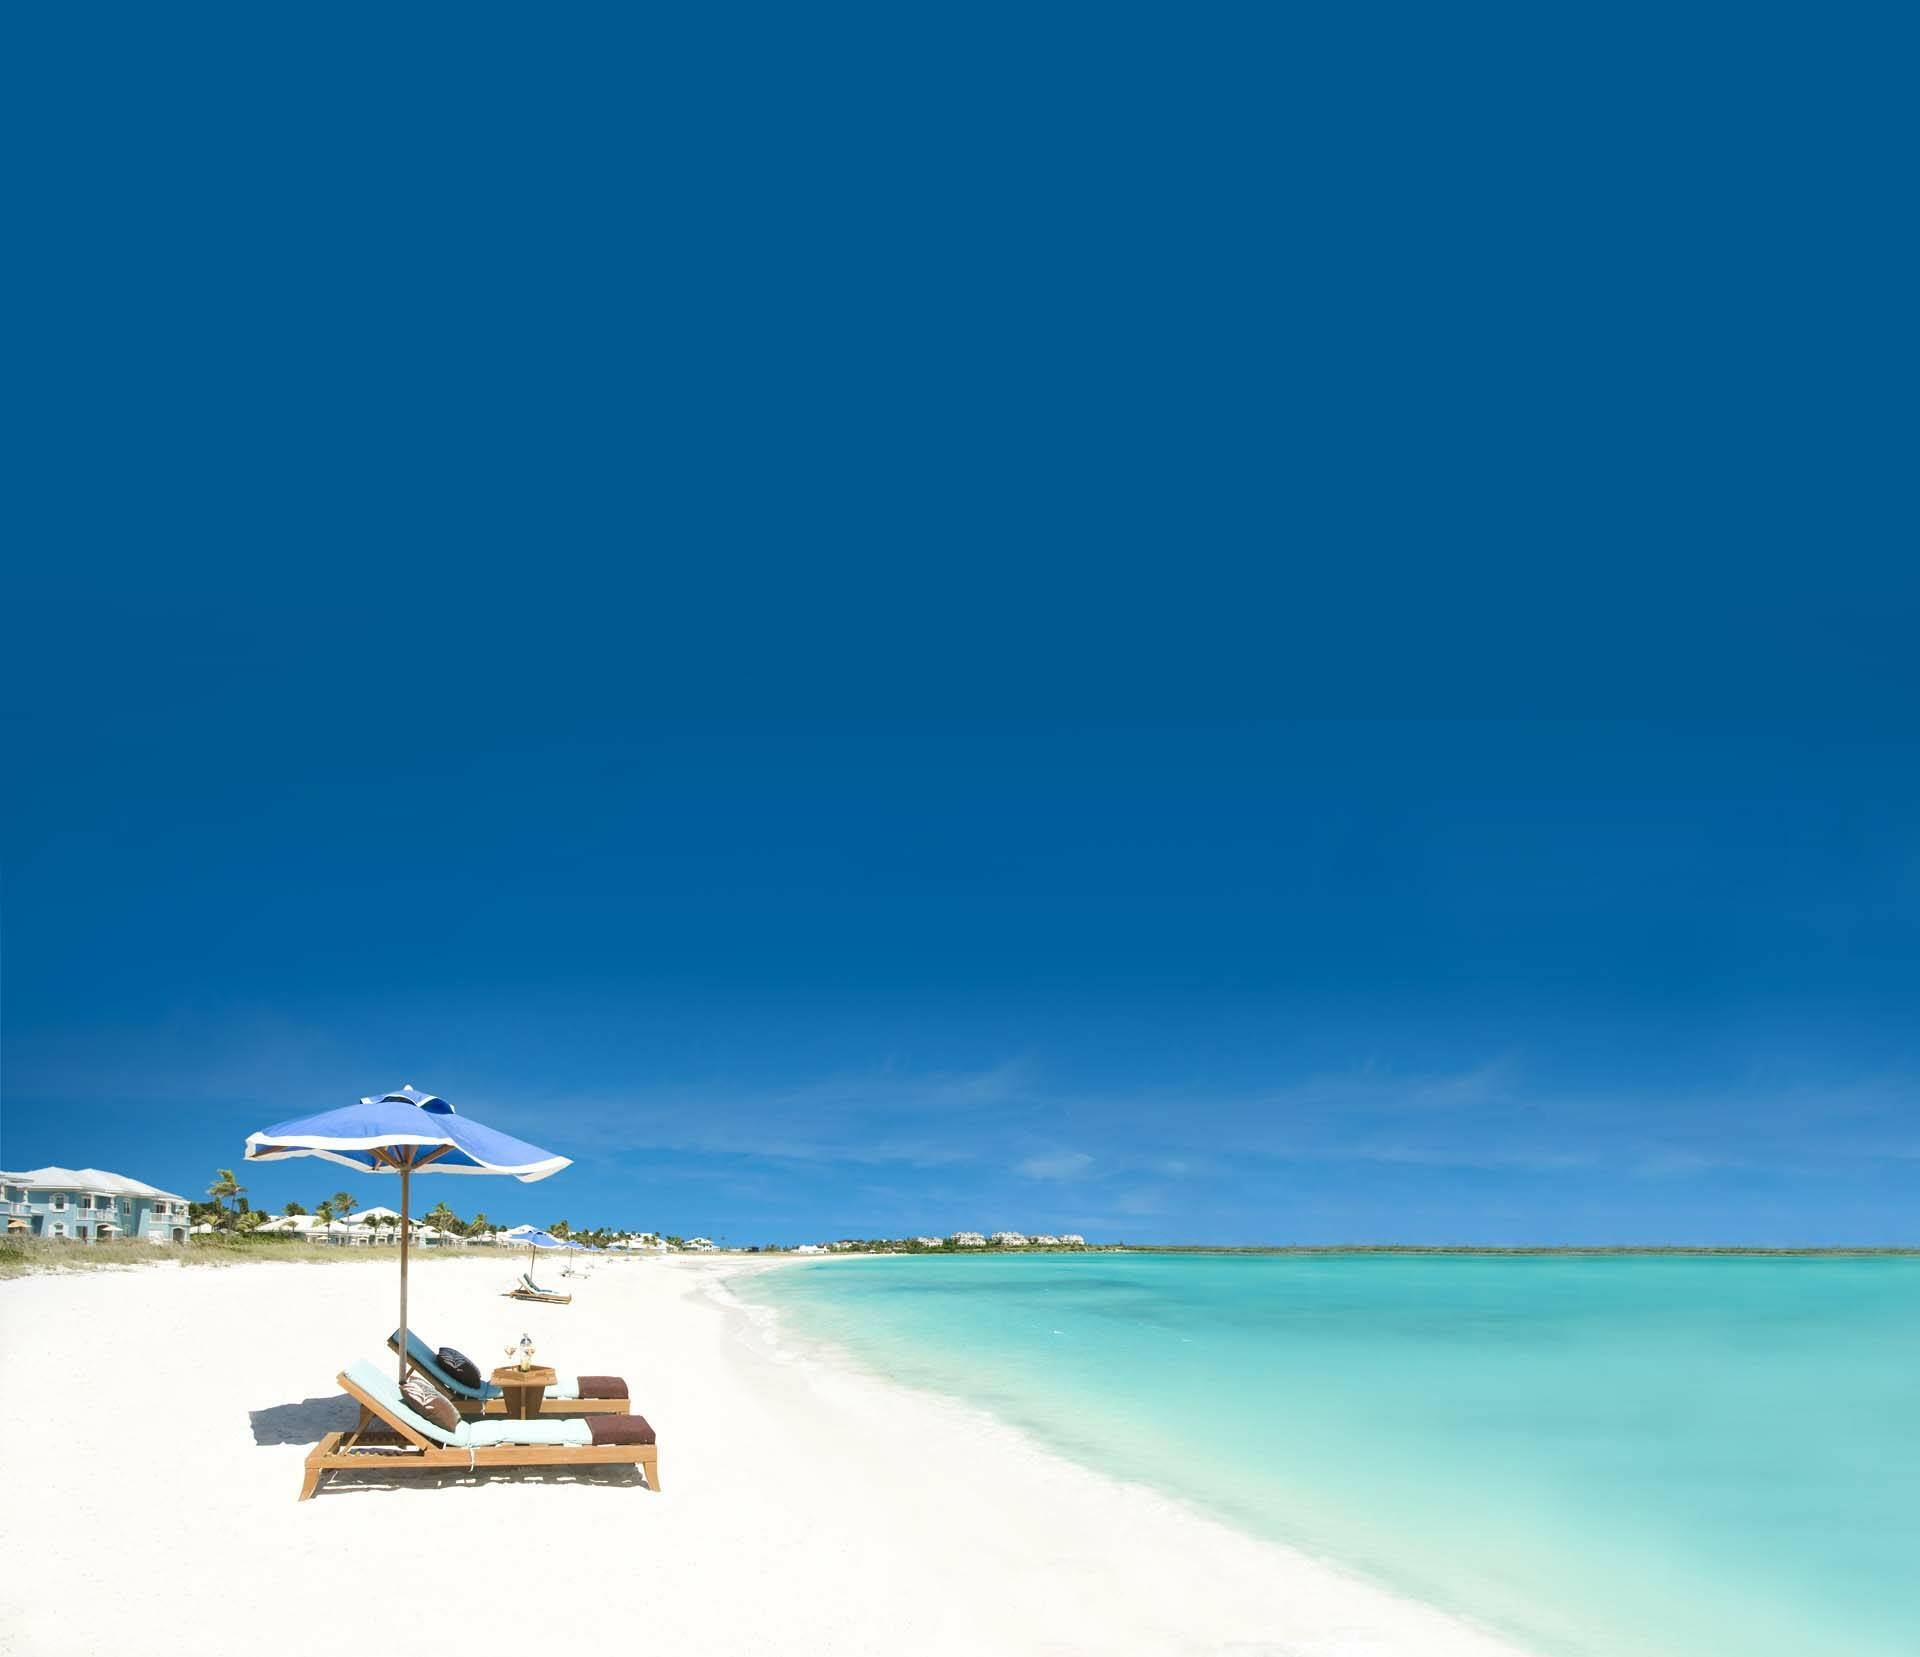 Sandals Emerald Bay Exuma Bahamas Plage